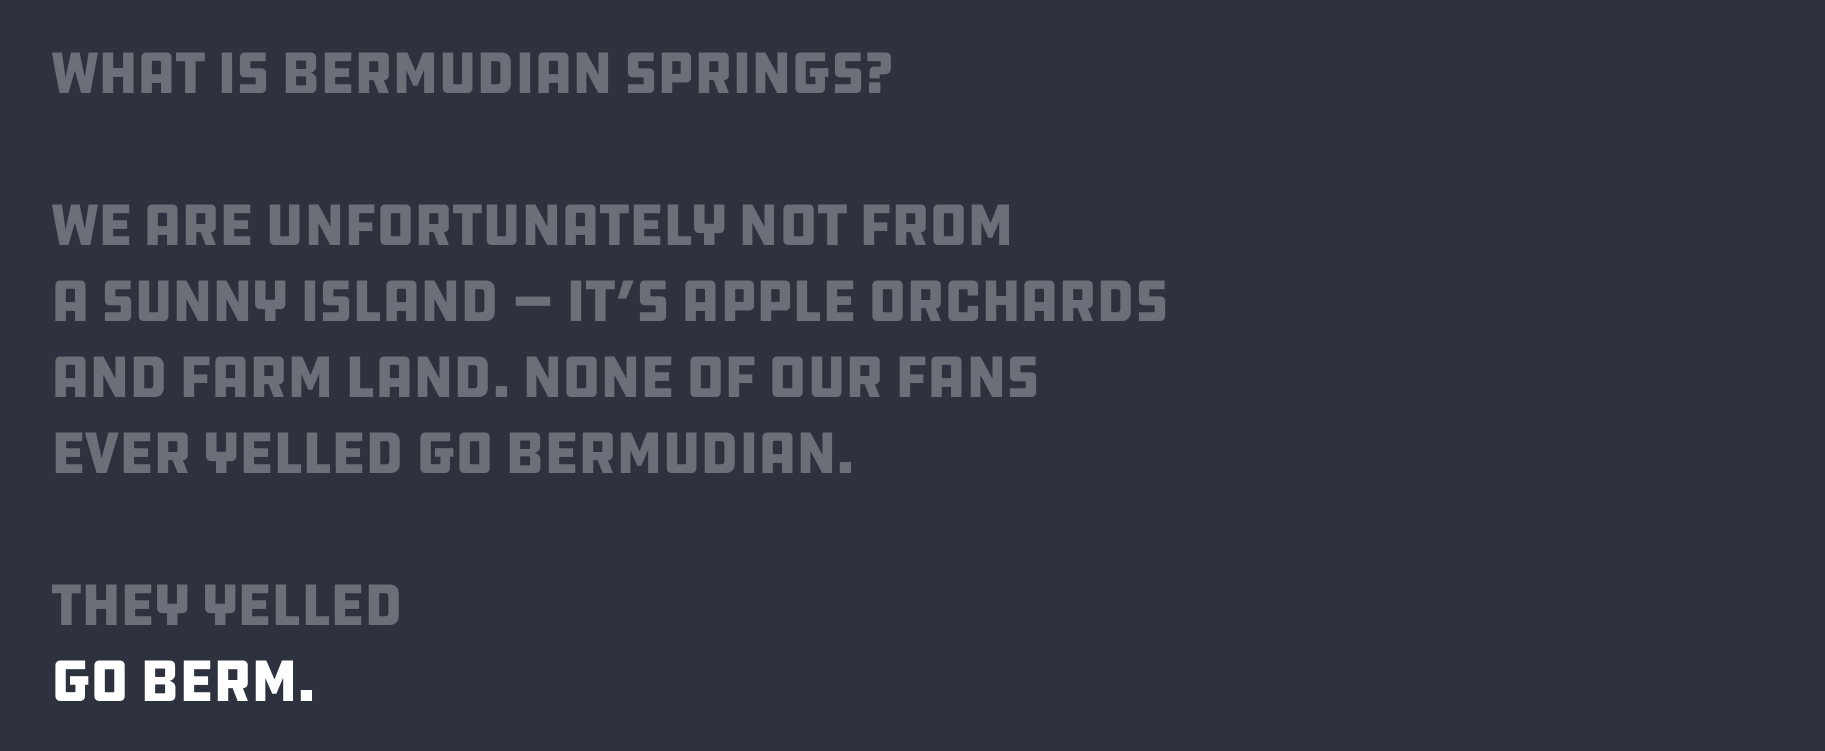 What is Bermudian Springs? We are unfortunately not from a sunny island — it's apple orchards and farm land. None of our fans ever yelled go Bermudian. They yelled GO BERM.